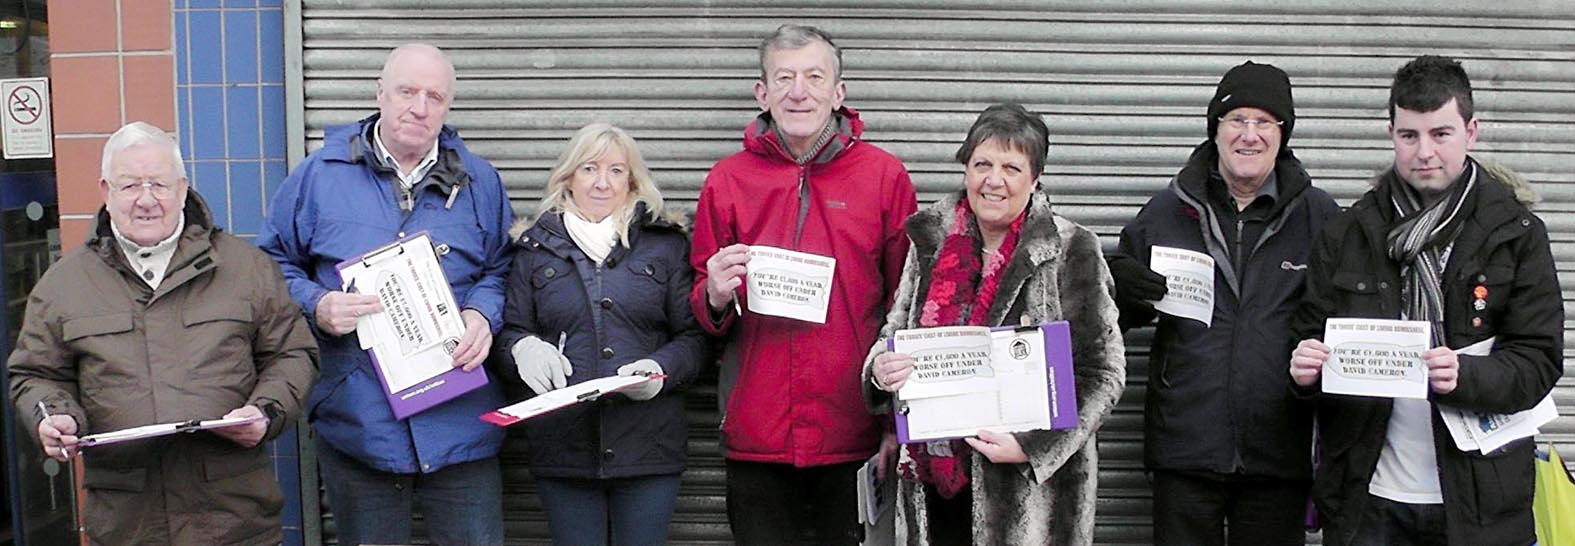 Collecting signatures for their petition are, from left, Peter Finch, Tom Robinson, Anne Graham, Cllr David Chadwick, MP Julie Hilling, John Gillatt and Matthew Farnworth